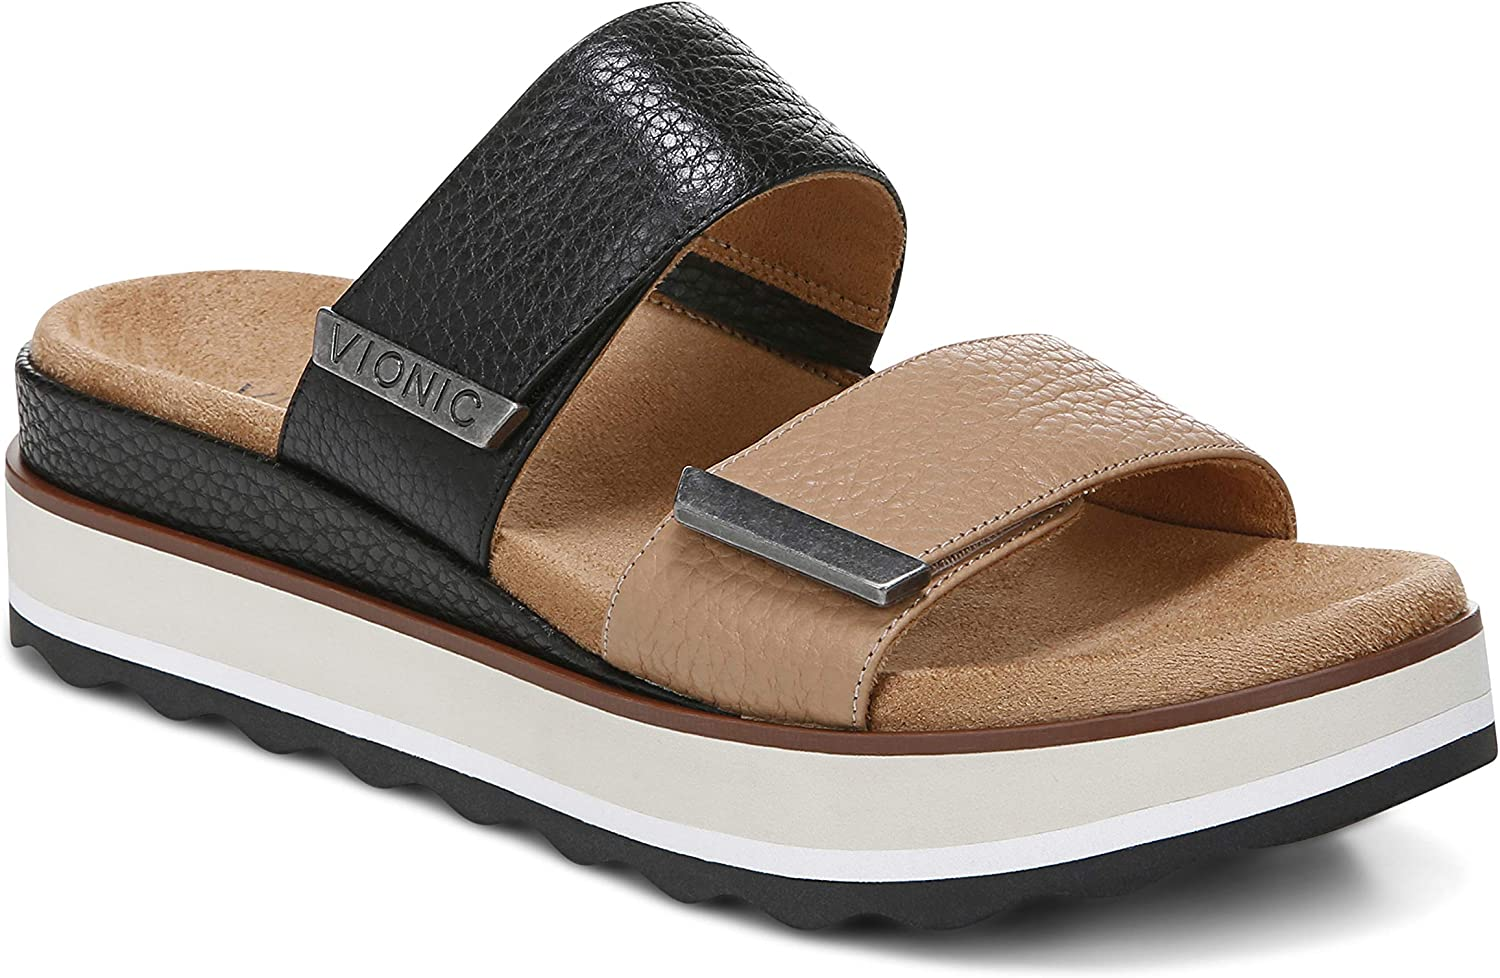 Vionic Women's Phoenix Brandie Slide Platform Sandal- Supportive Slip on Flatform Sandals that include Three-Zone Comfort with Orthotic Insole Arch Support, Medium Fit Sandals for Women